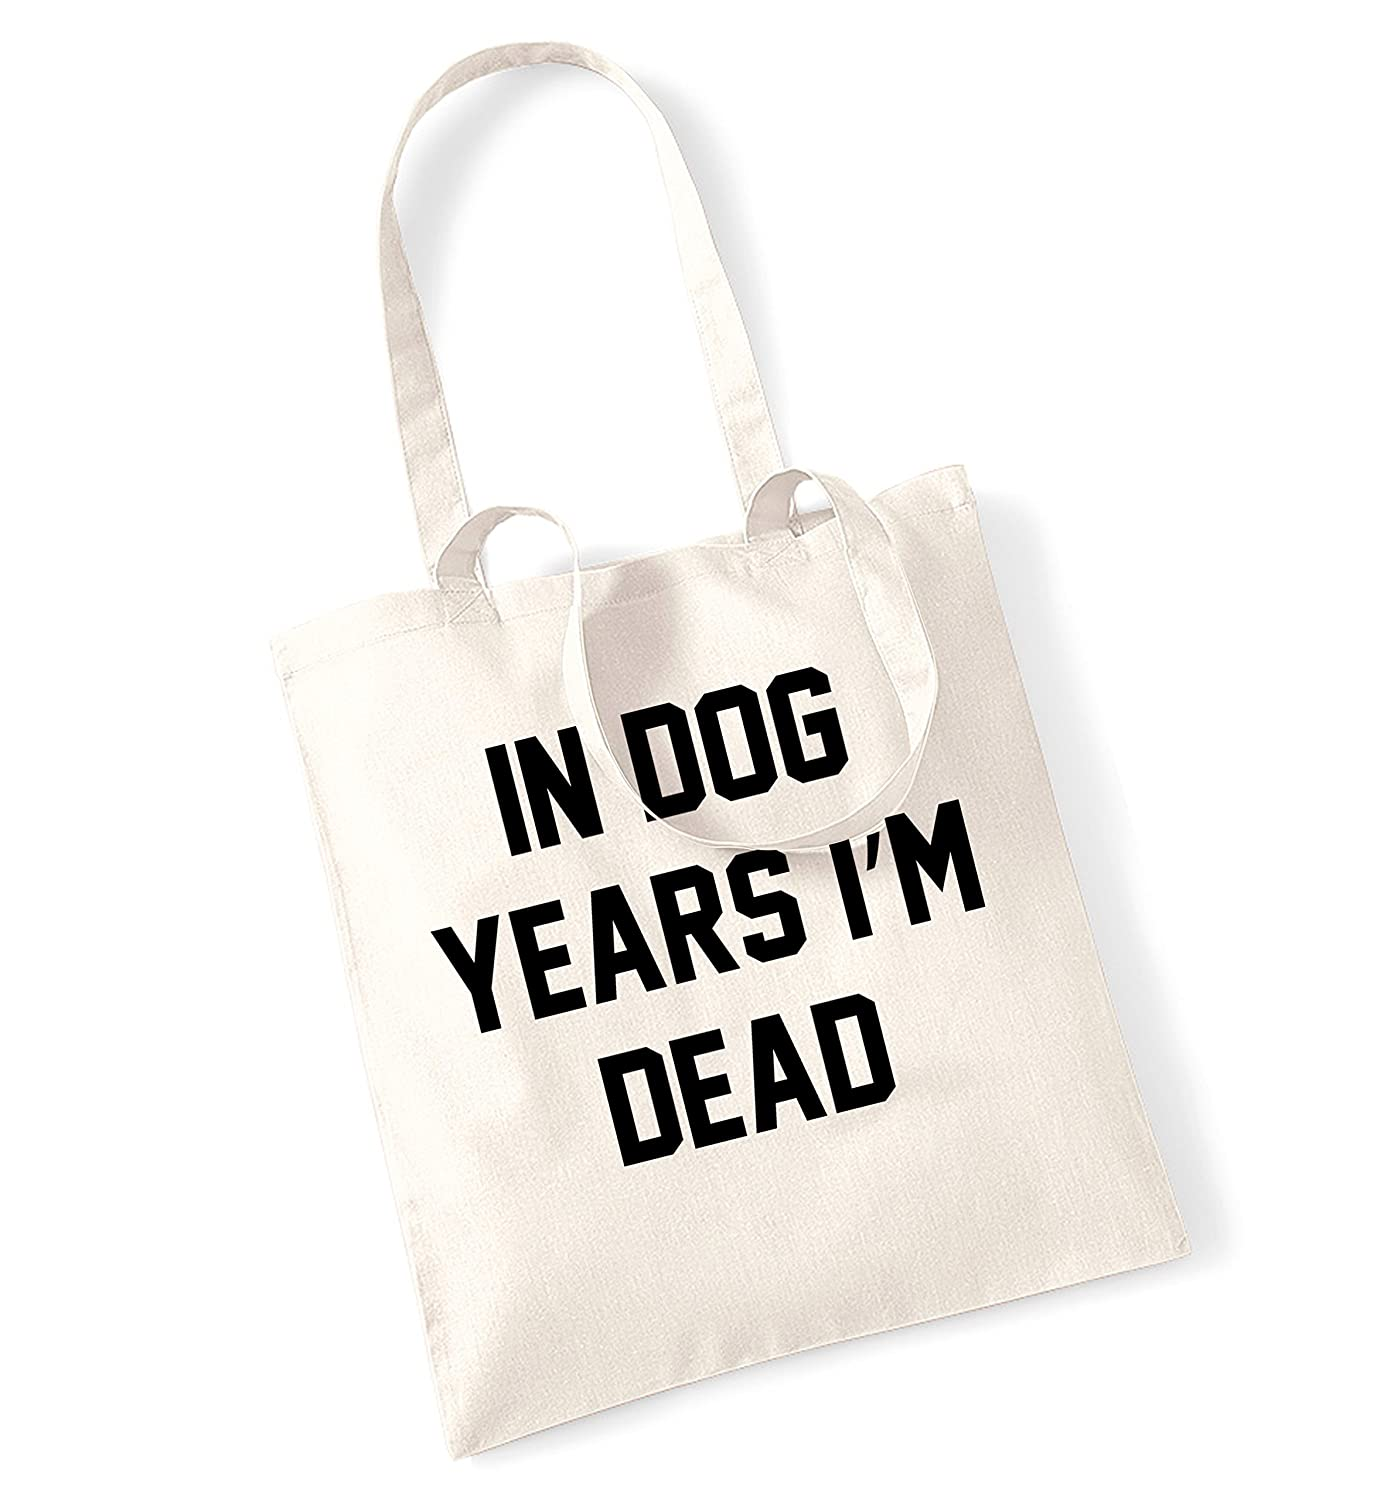 In dog years I'm dead tote bag T00628TB-N